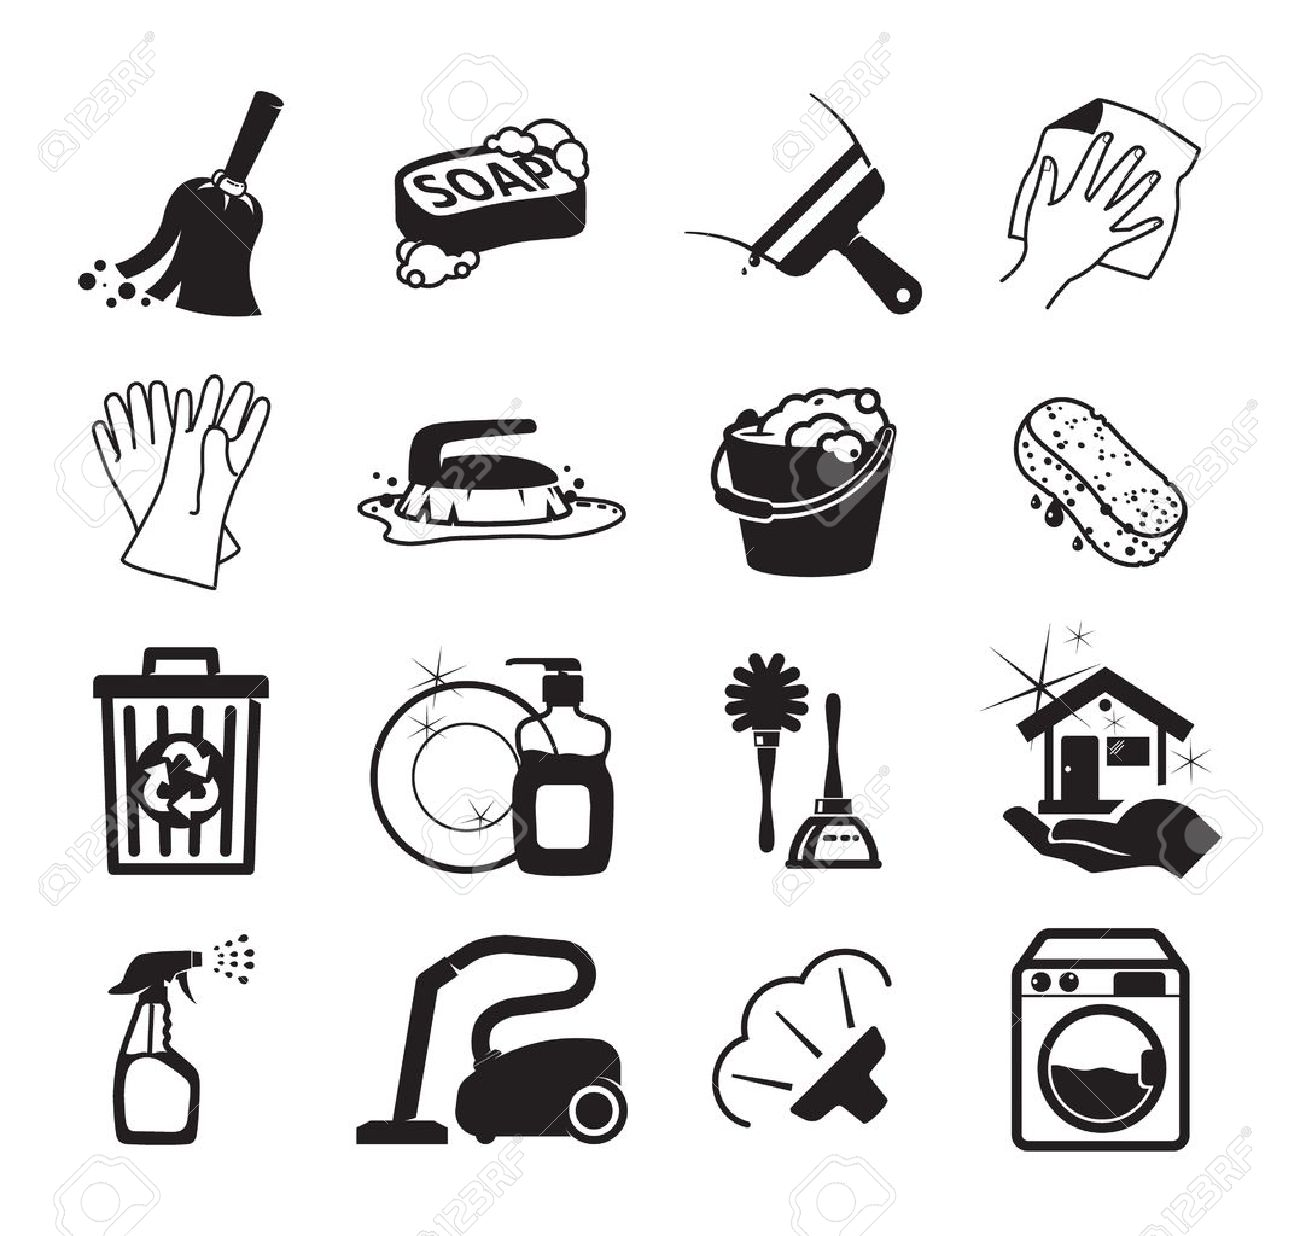 Monochromatic cleaning icons - 19841752